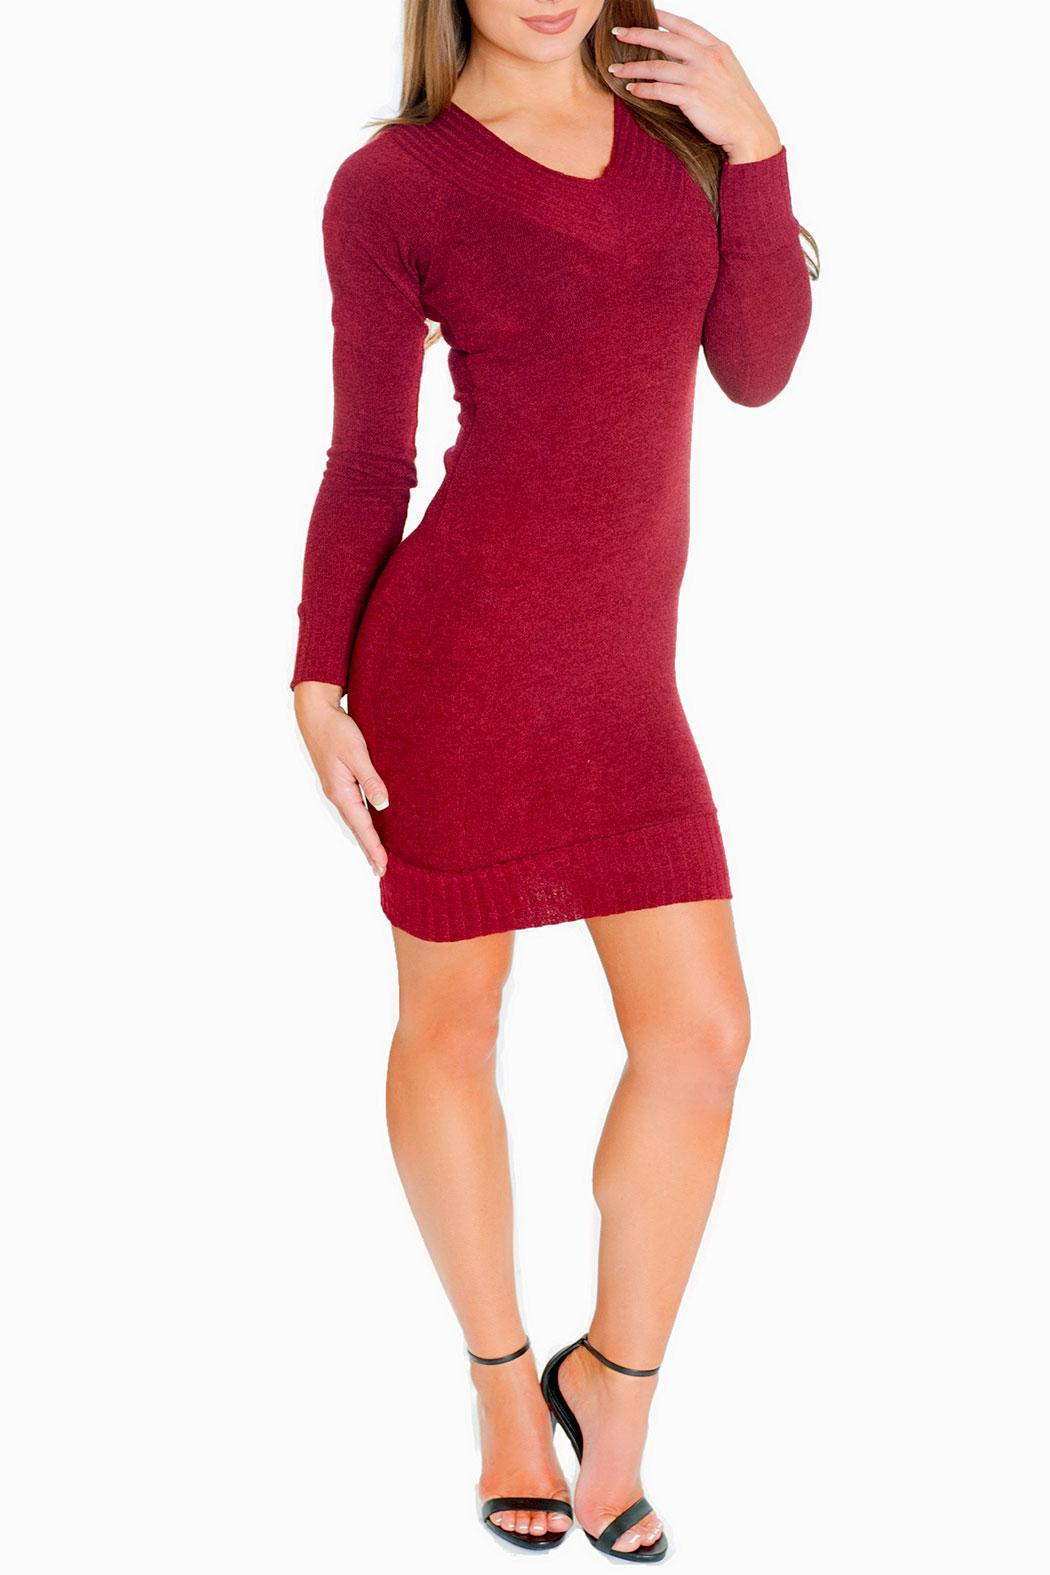 Chynna Dolls Gigi Sweater Dress - Front Cropped Image